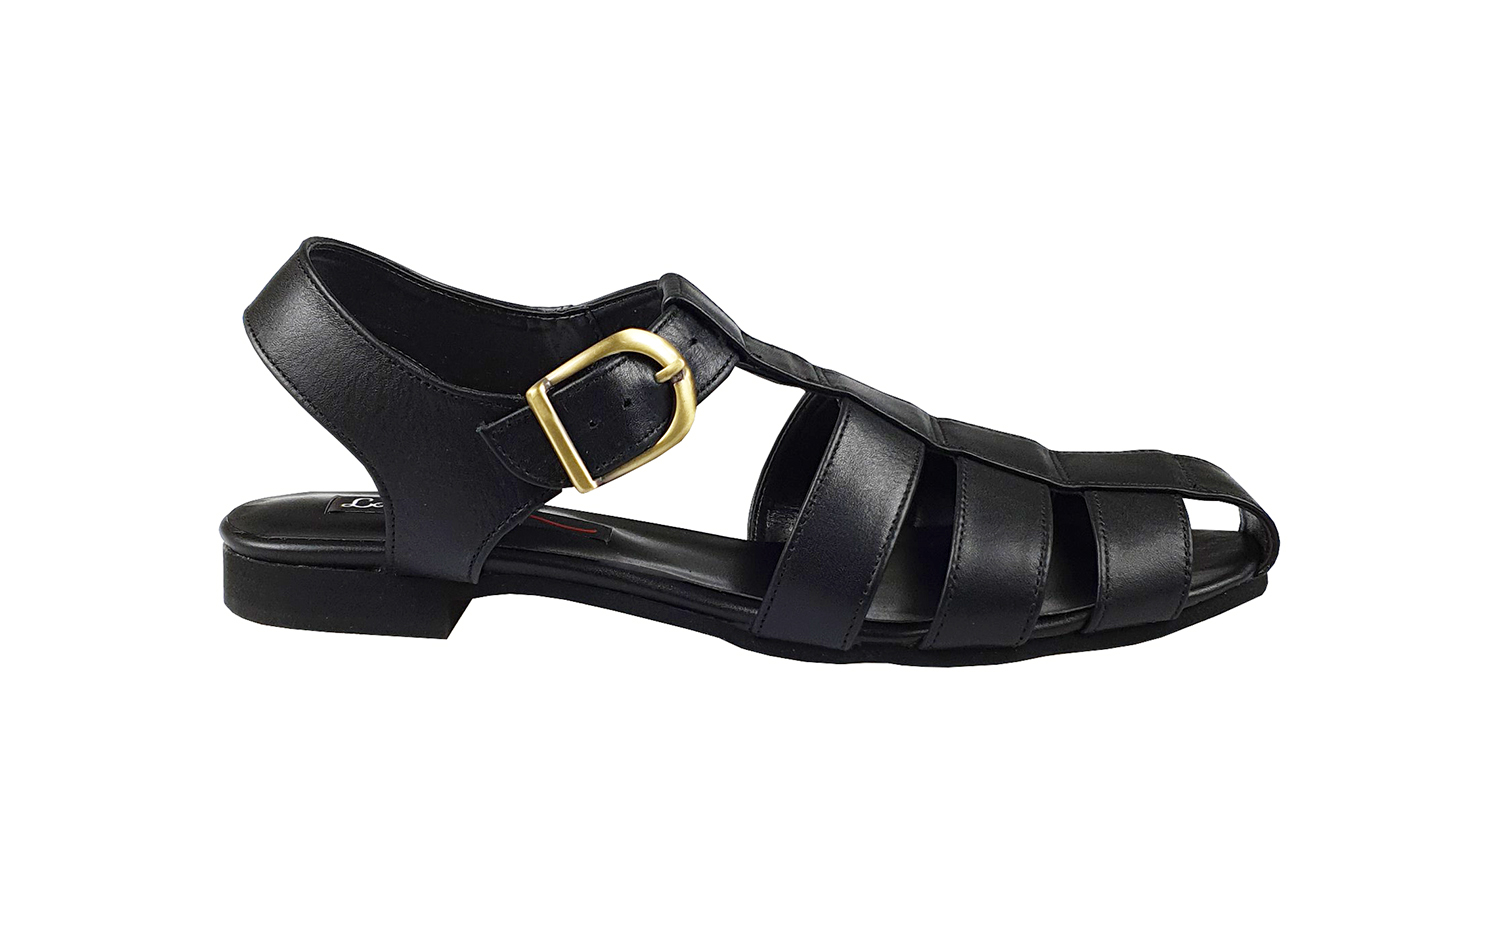 Isla cage sandals in black leather